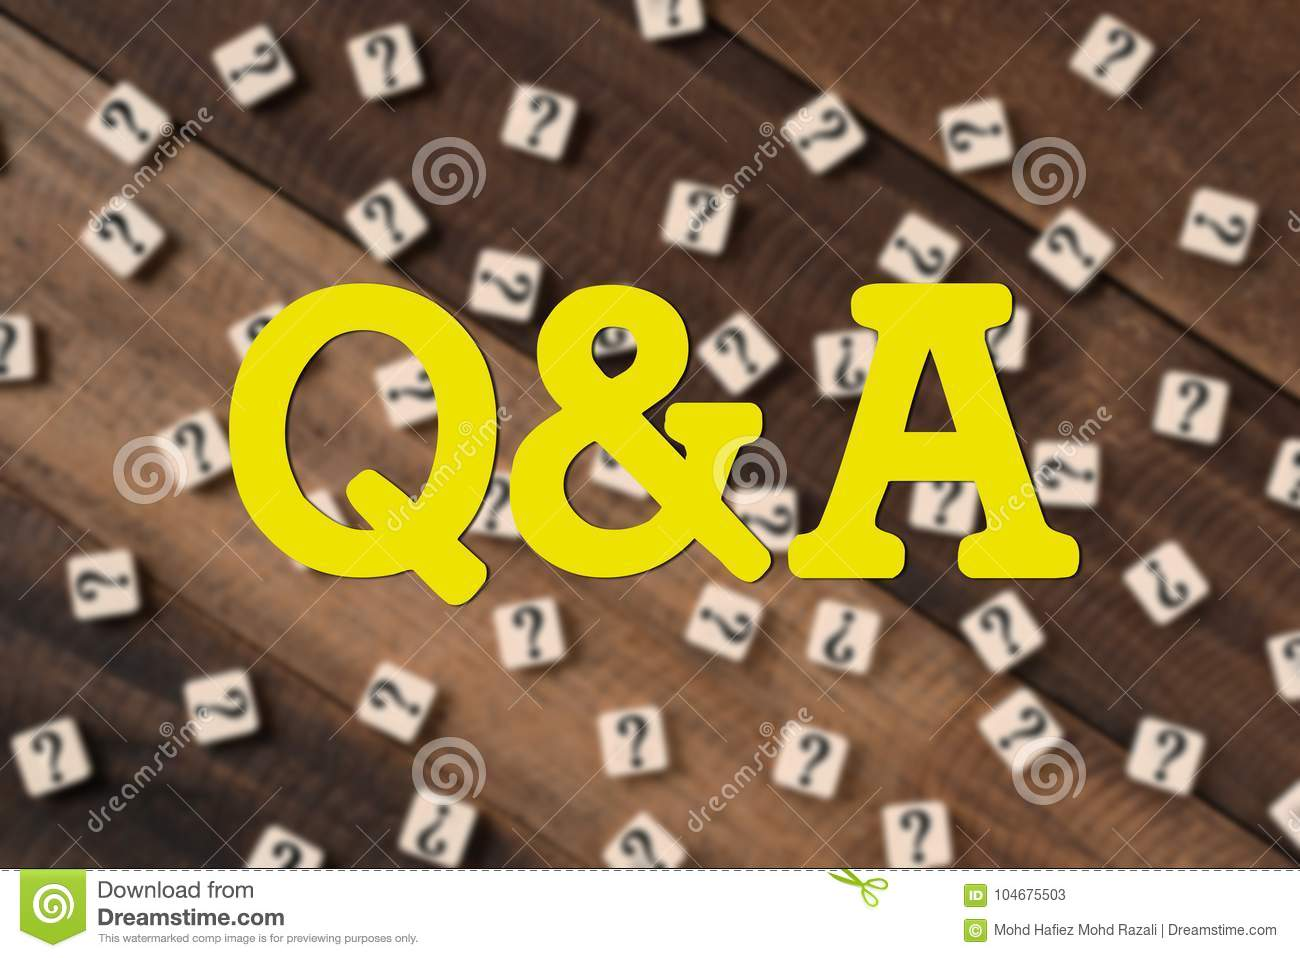 Questions and Answers Q&A concept